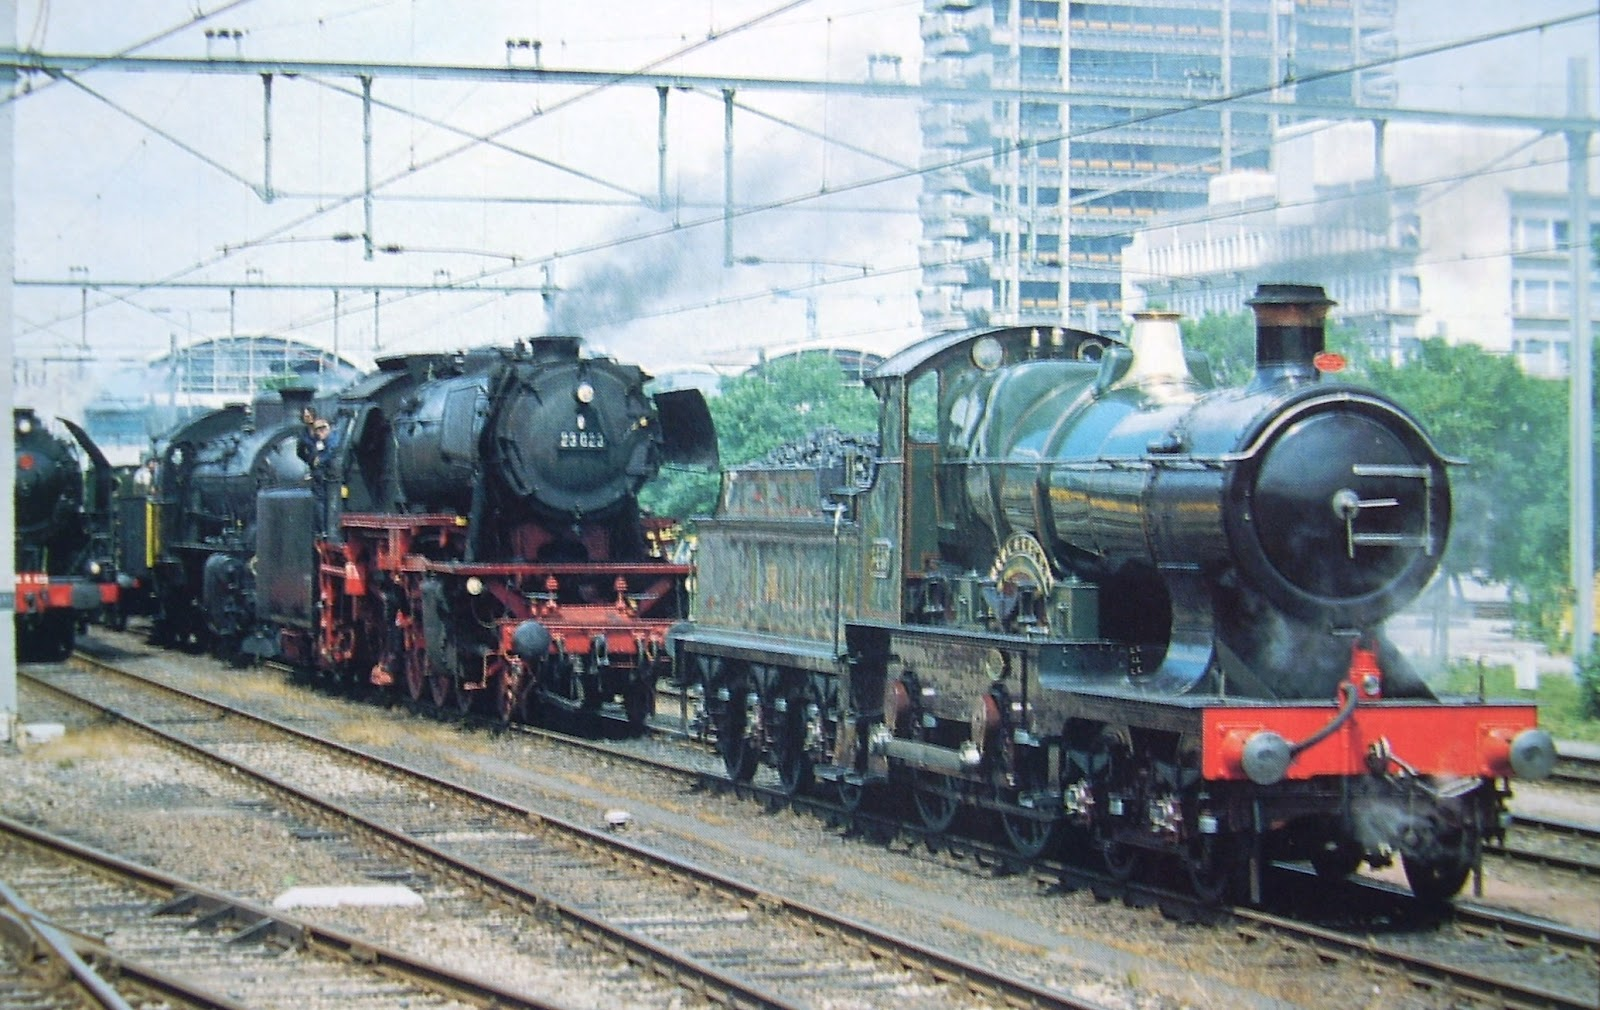 City of Truro at Utrecht | Railway and other Snippets.